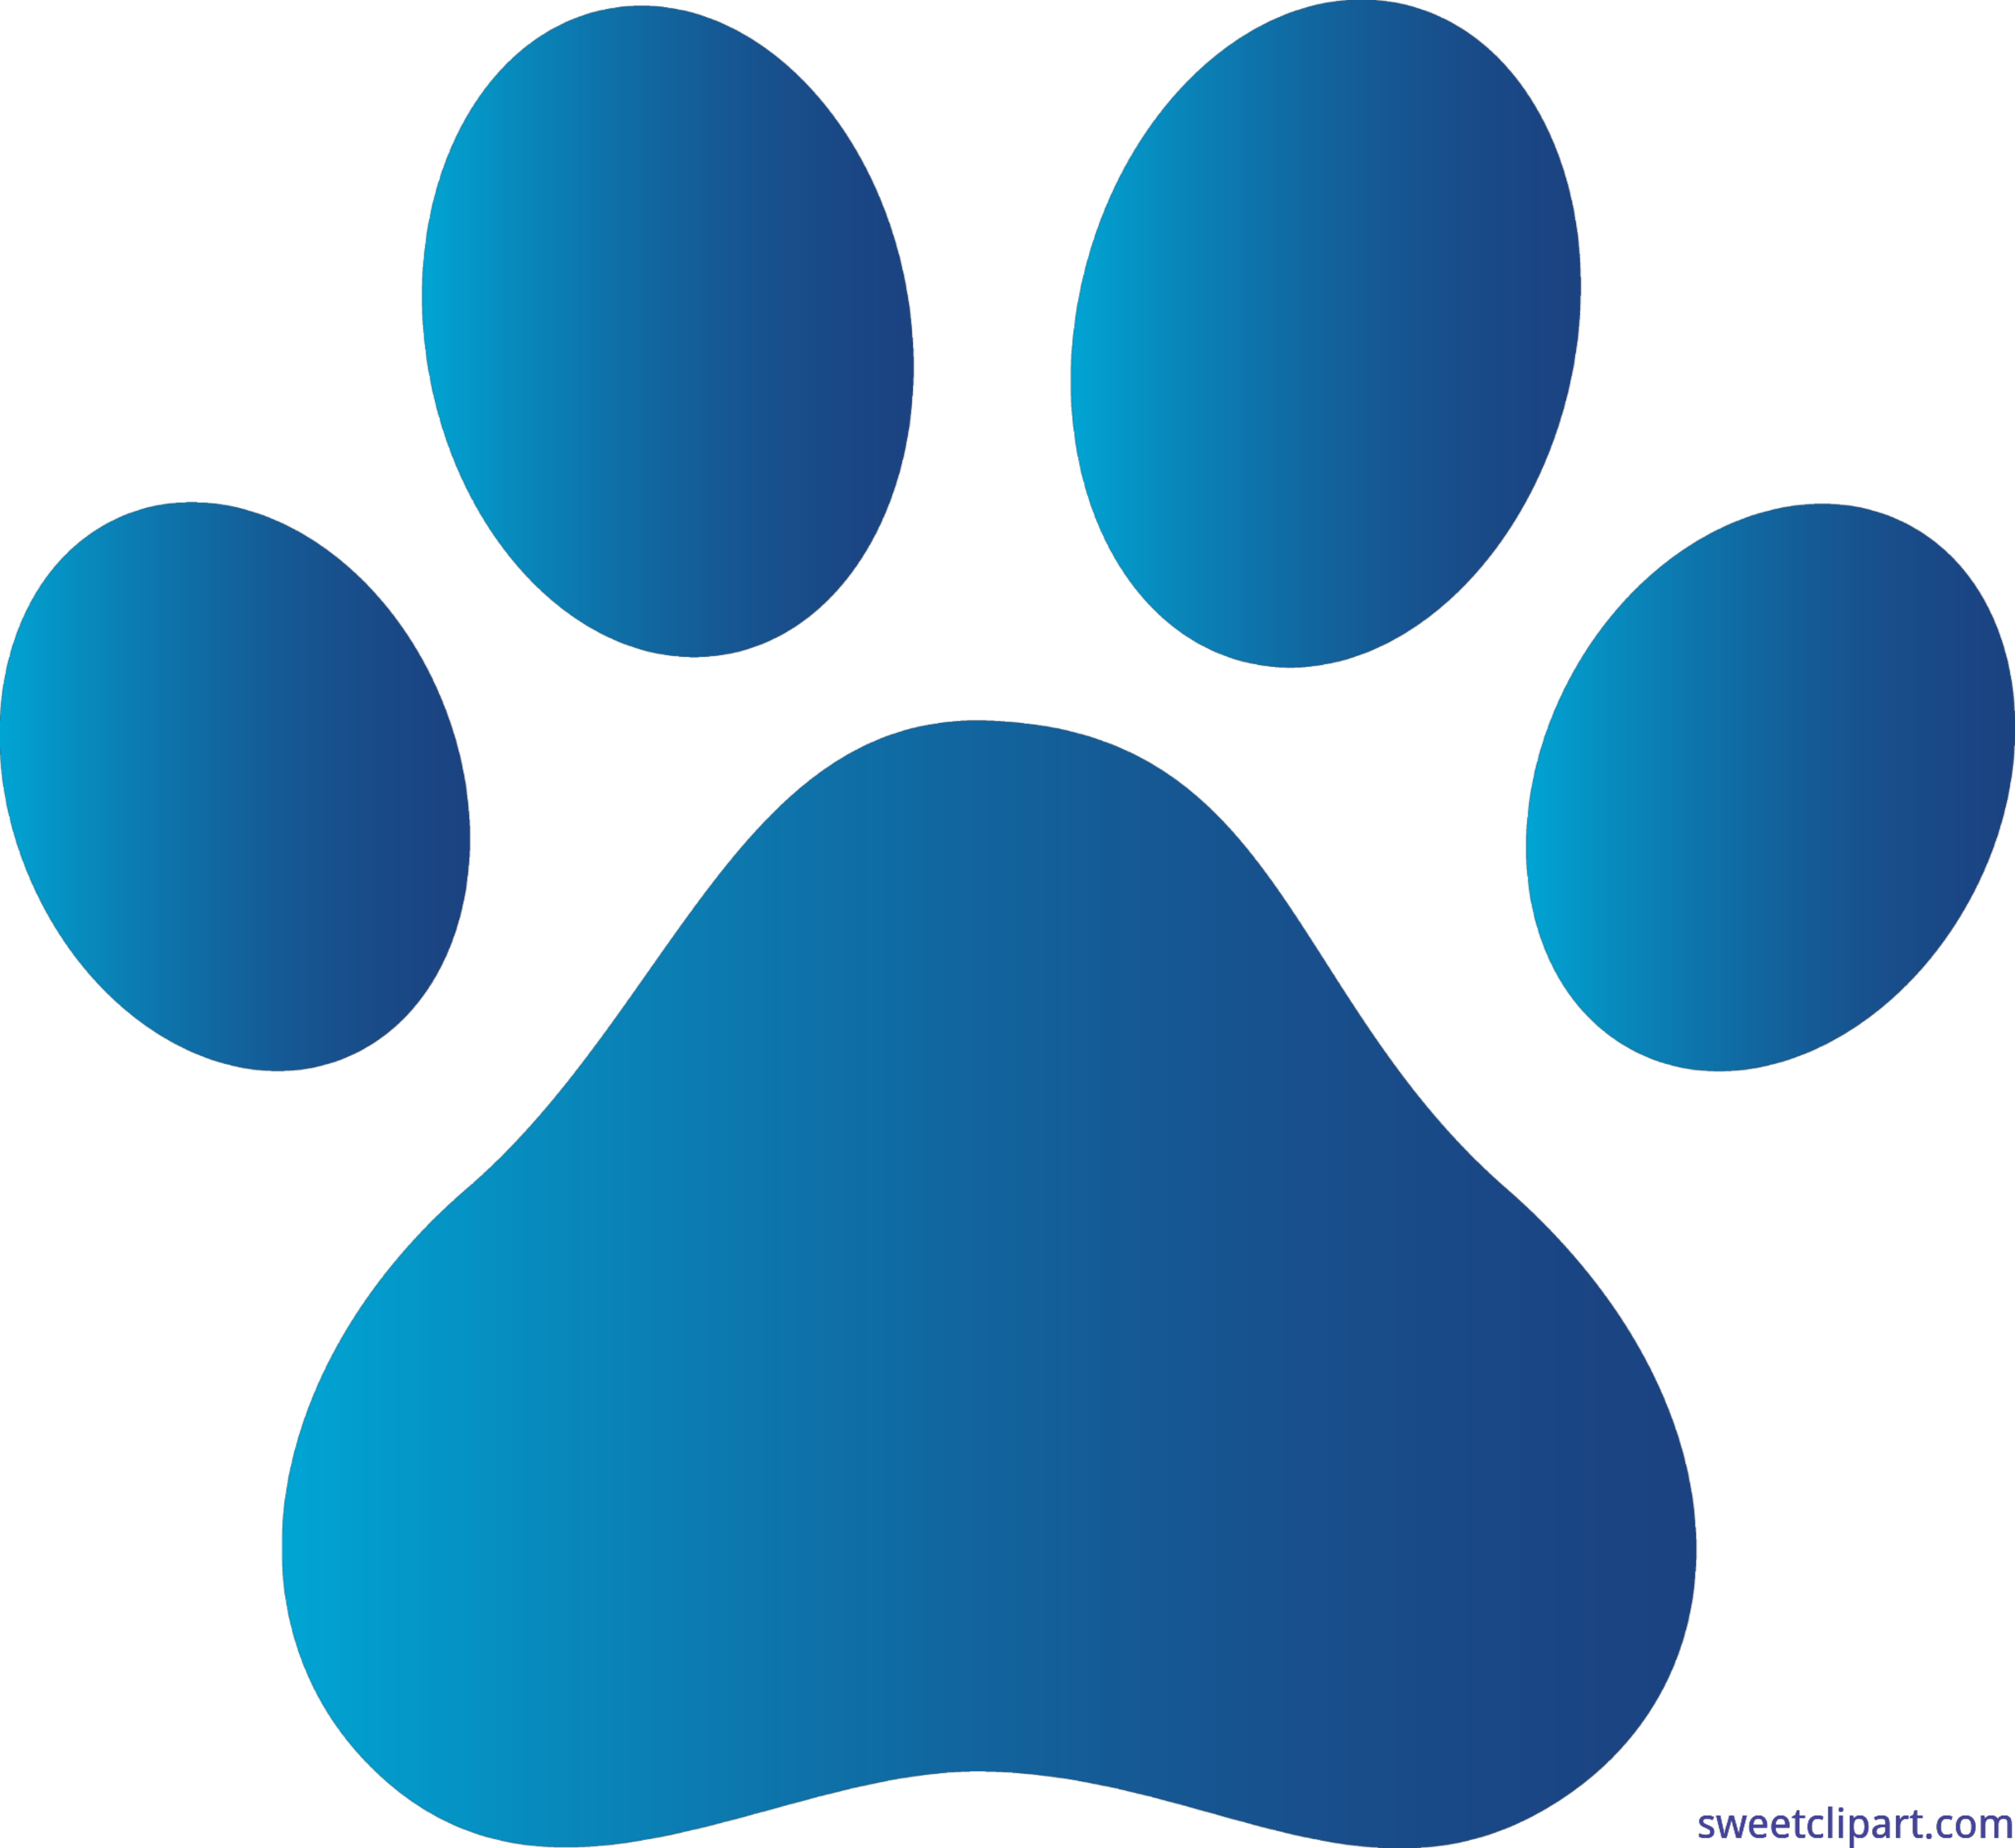 Image Result For Free Pet Clip Art Borders Paw Print Clip Art Dog Paw Print Puppy Paw Prints